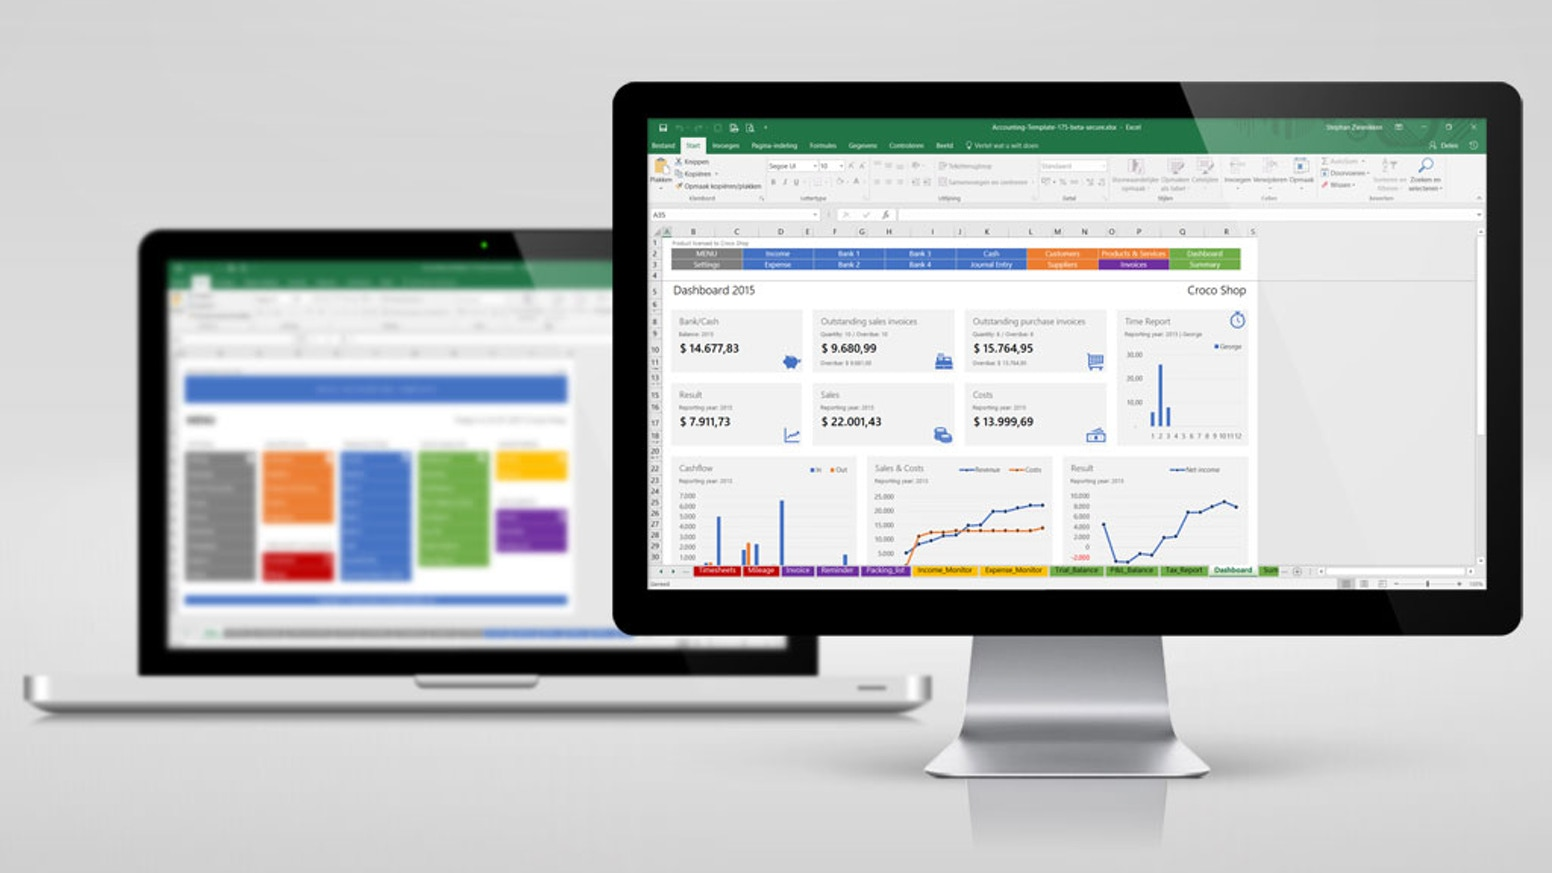 Excel accounting template by stephan zwanikken kickstarter the all in one accounting solution in excel for small business owners wajeb